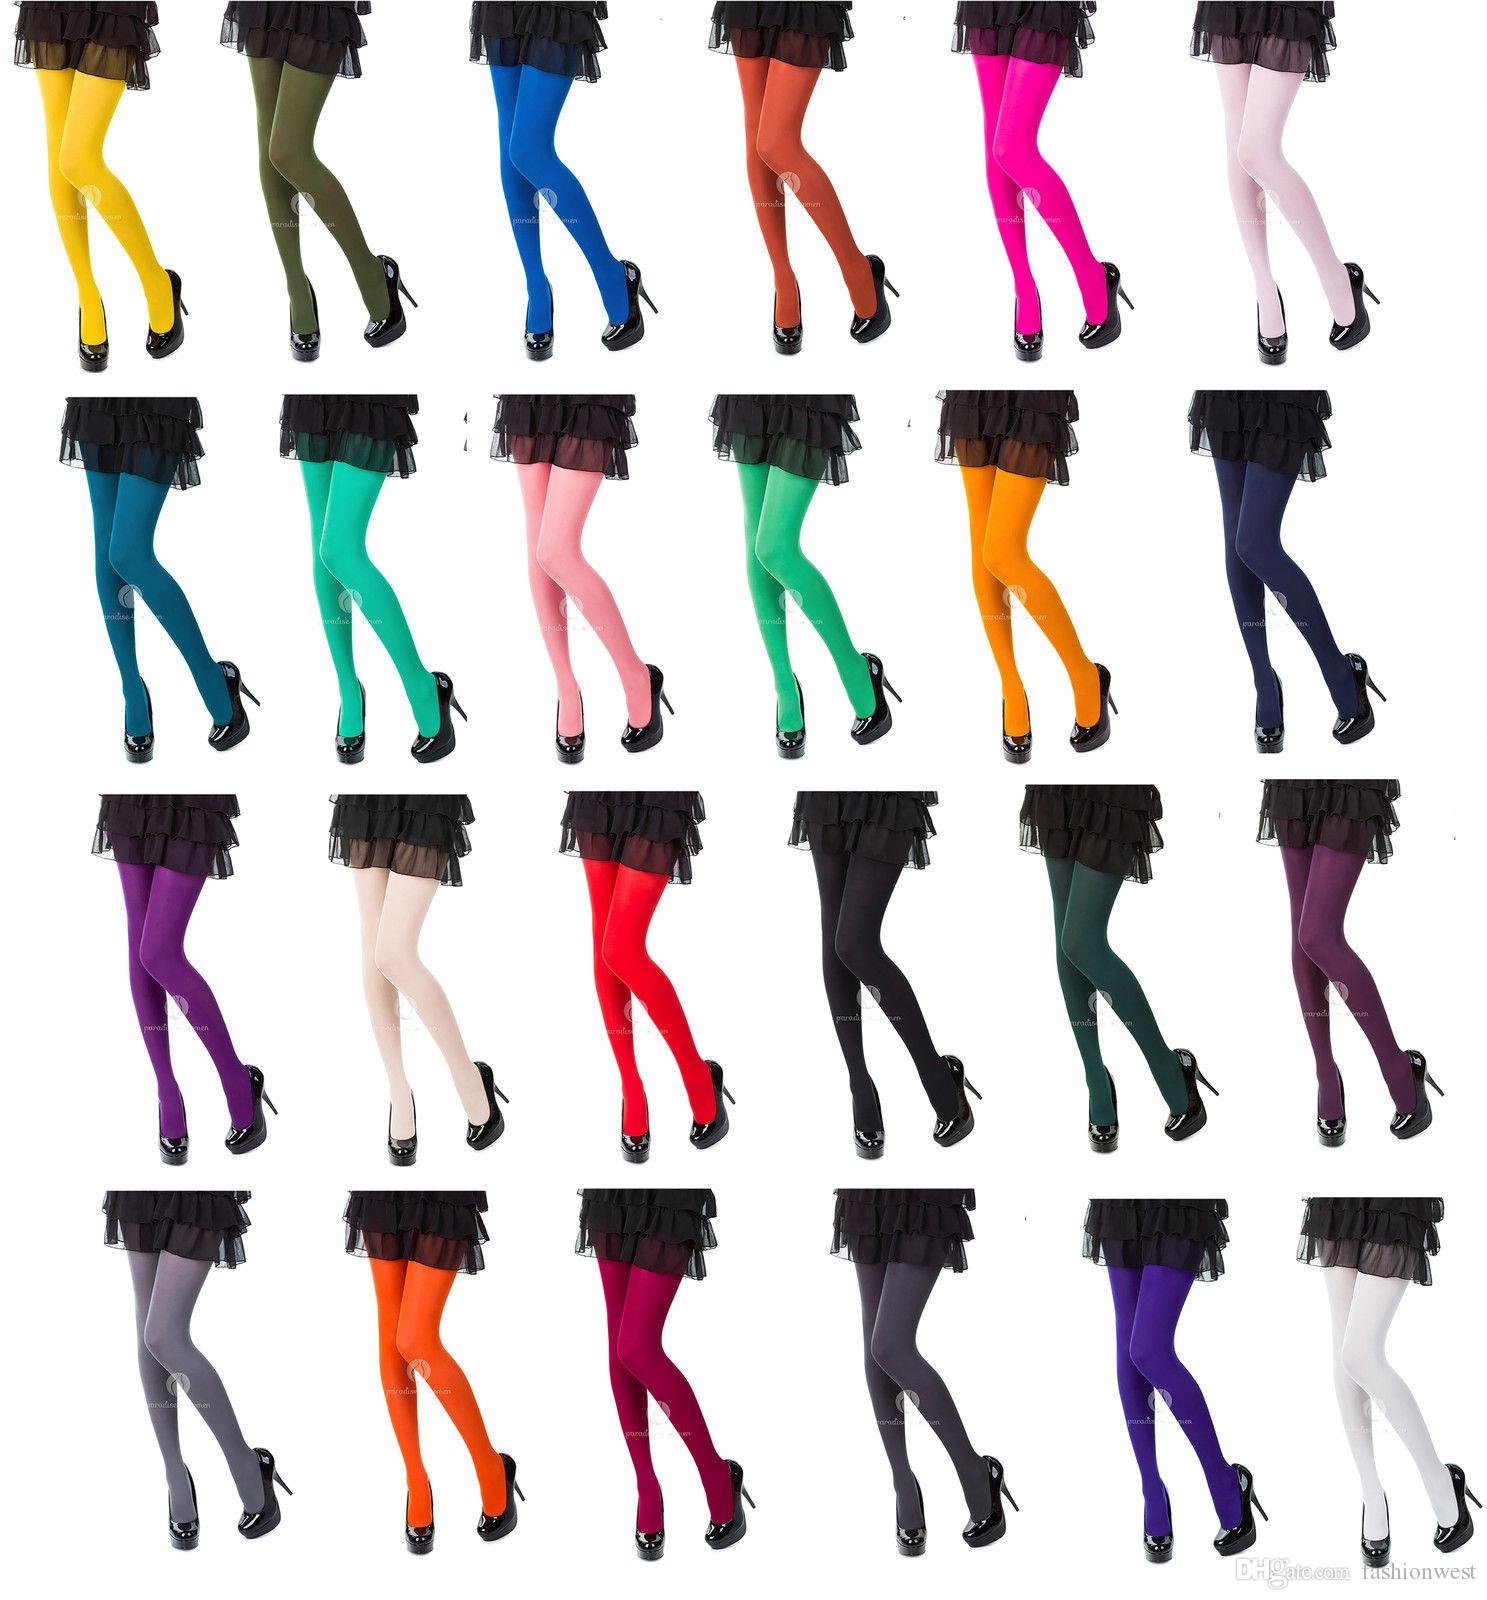 Womens Tights Choose From 25 Fashionable Colours 120 Denier New Warm Women Stockings Pantyhose Socks Tights Thick Opaque Solid Color